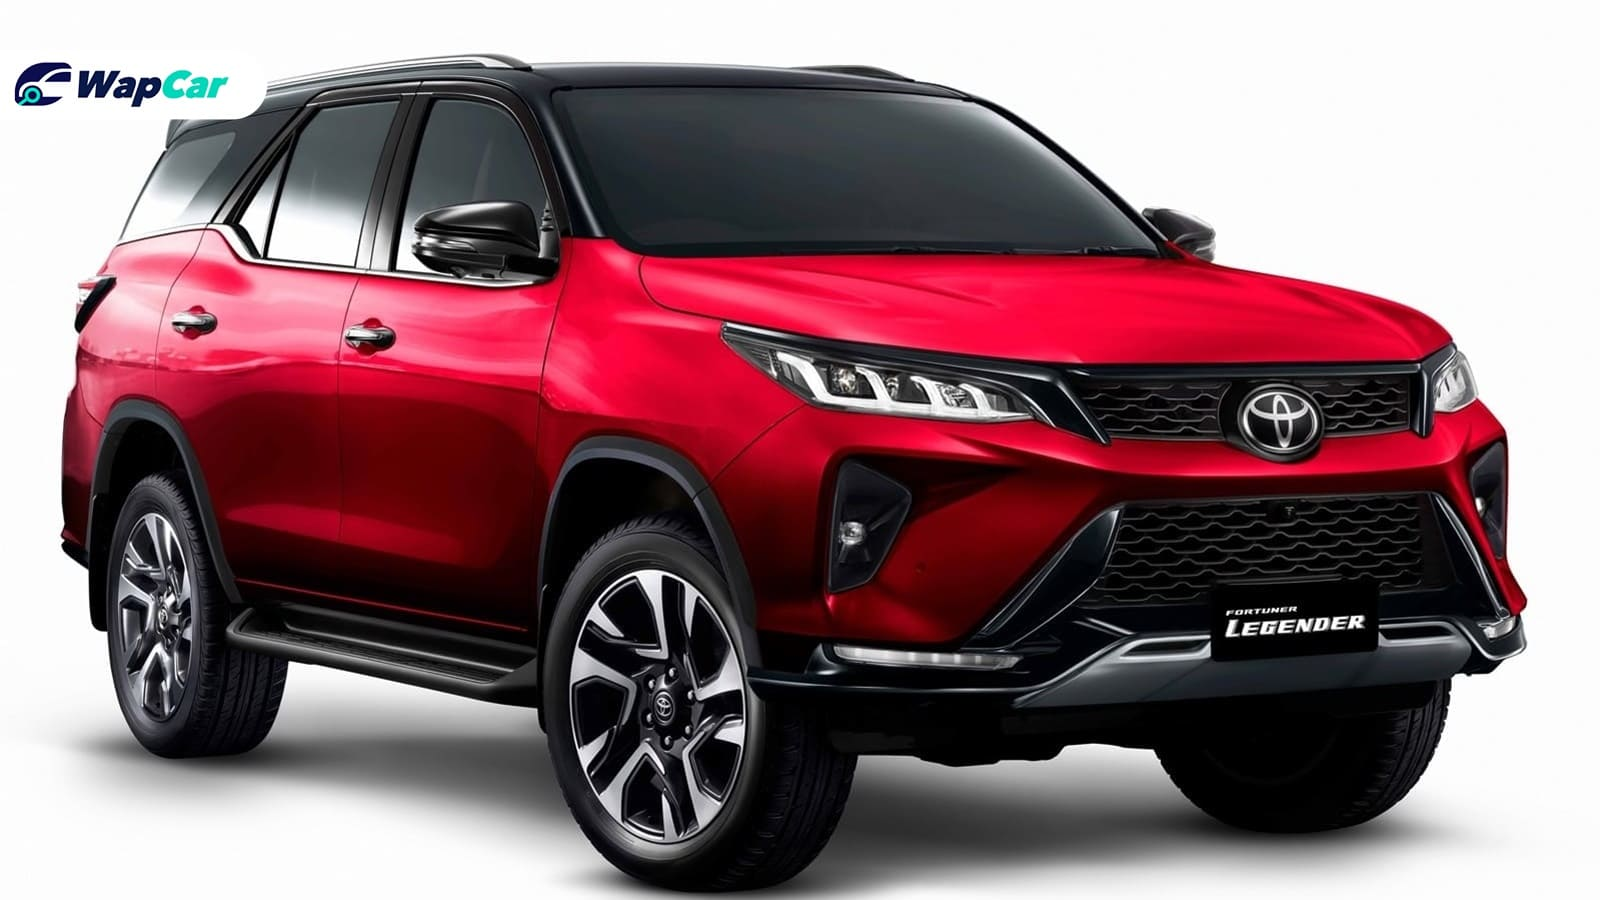 New 2020 Toyota Fortuner facelift - 204 PS and 500 Nm ...